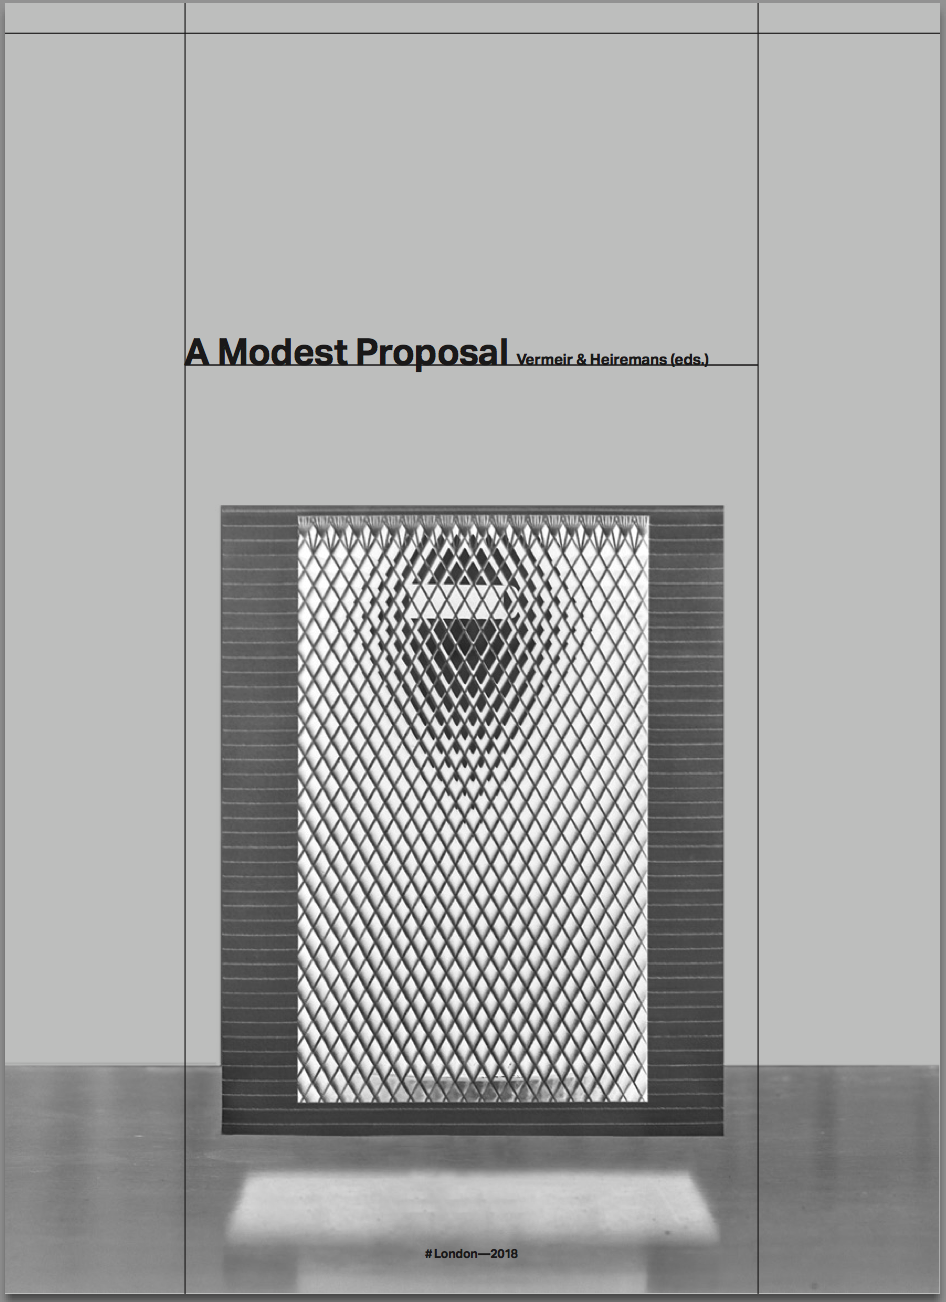 A MODEST PROPOSAL-a publication by Vermeir & Heiremans